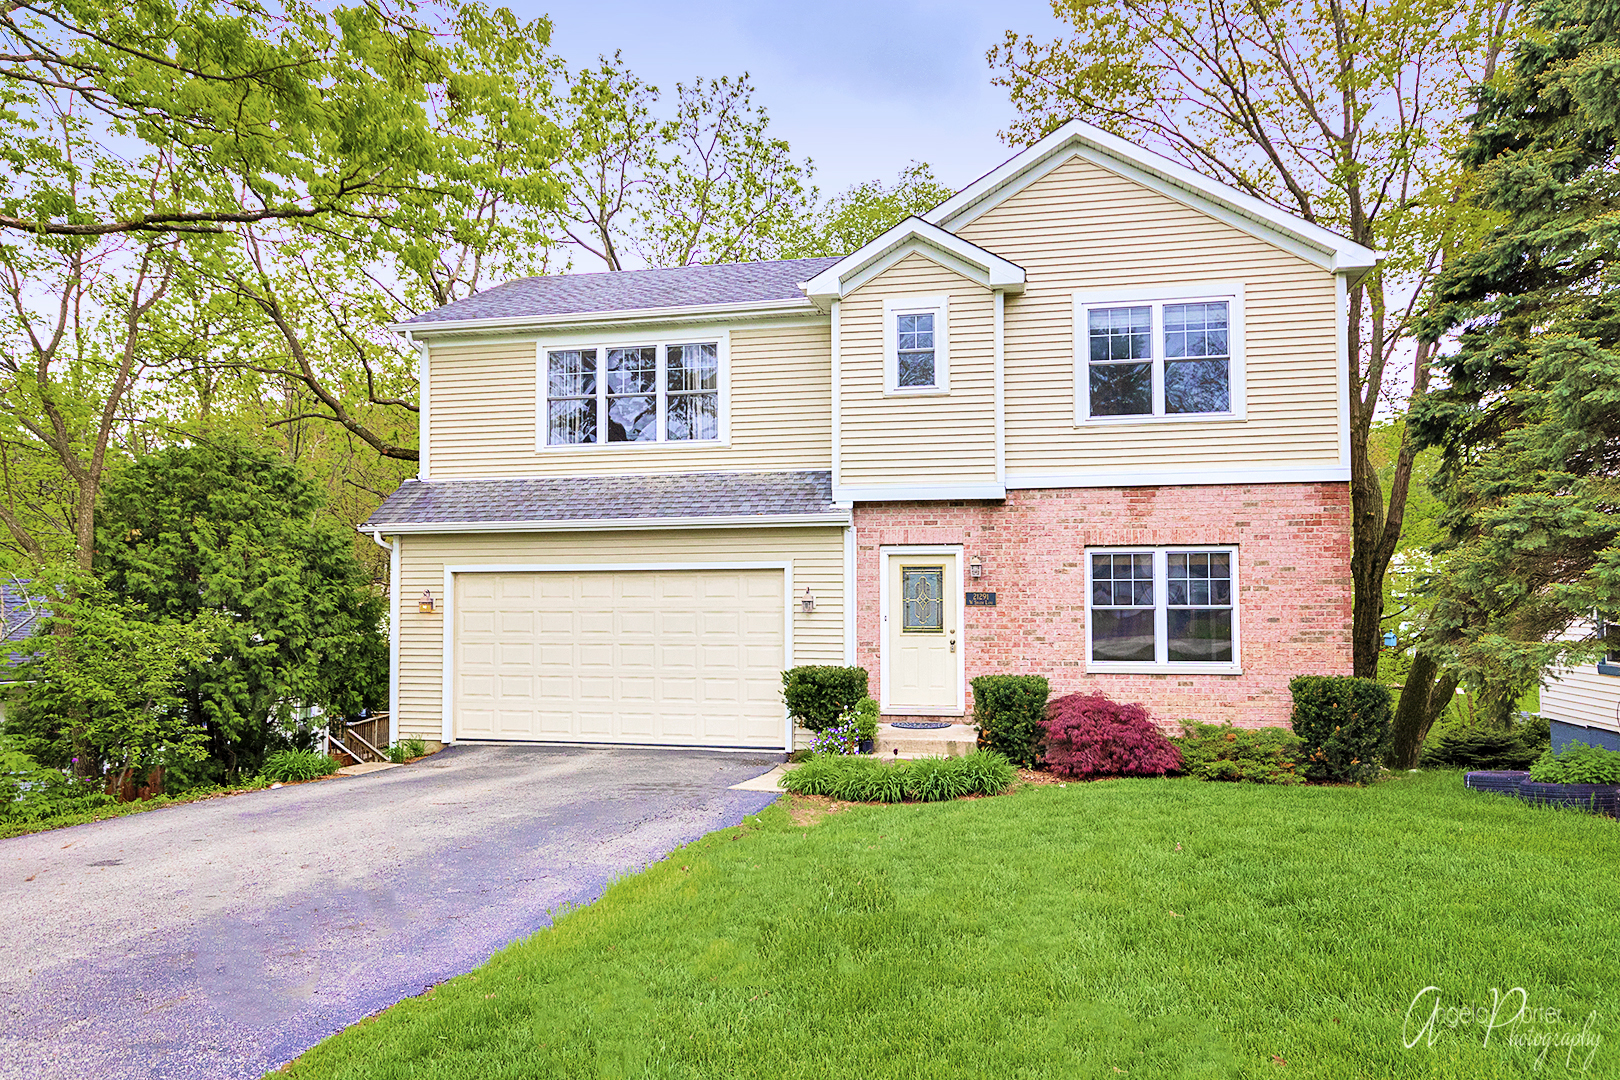 21291 West SHADY Lane, Lake Zurich in Lake County, IL 60047 Home for Sale